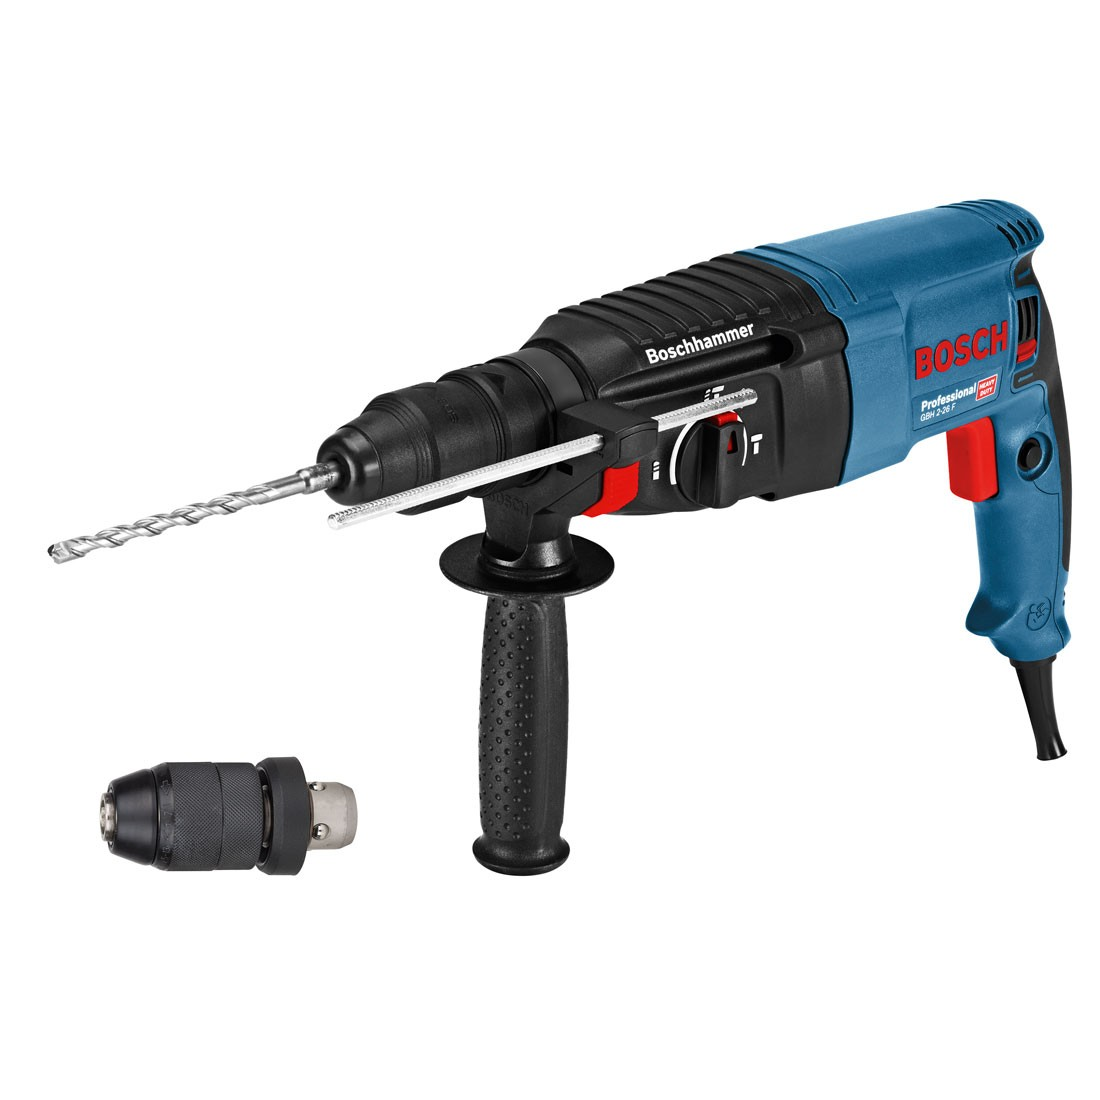 bosch gbh 2 26 f sds plus rotary hammer drill with quick change chuck in carry case powertool. Black Bedroom Furniture Sets. Home Design Ideas